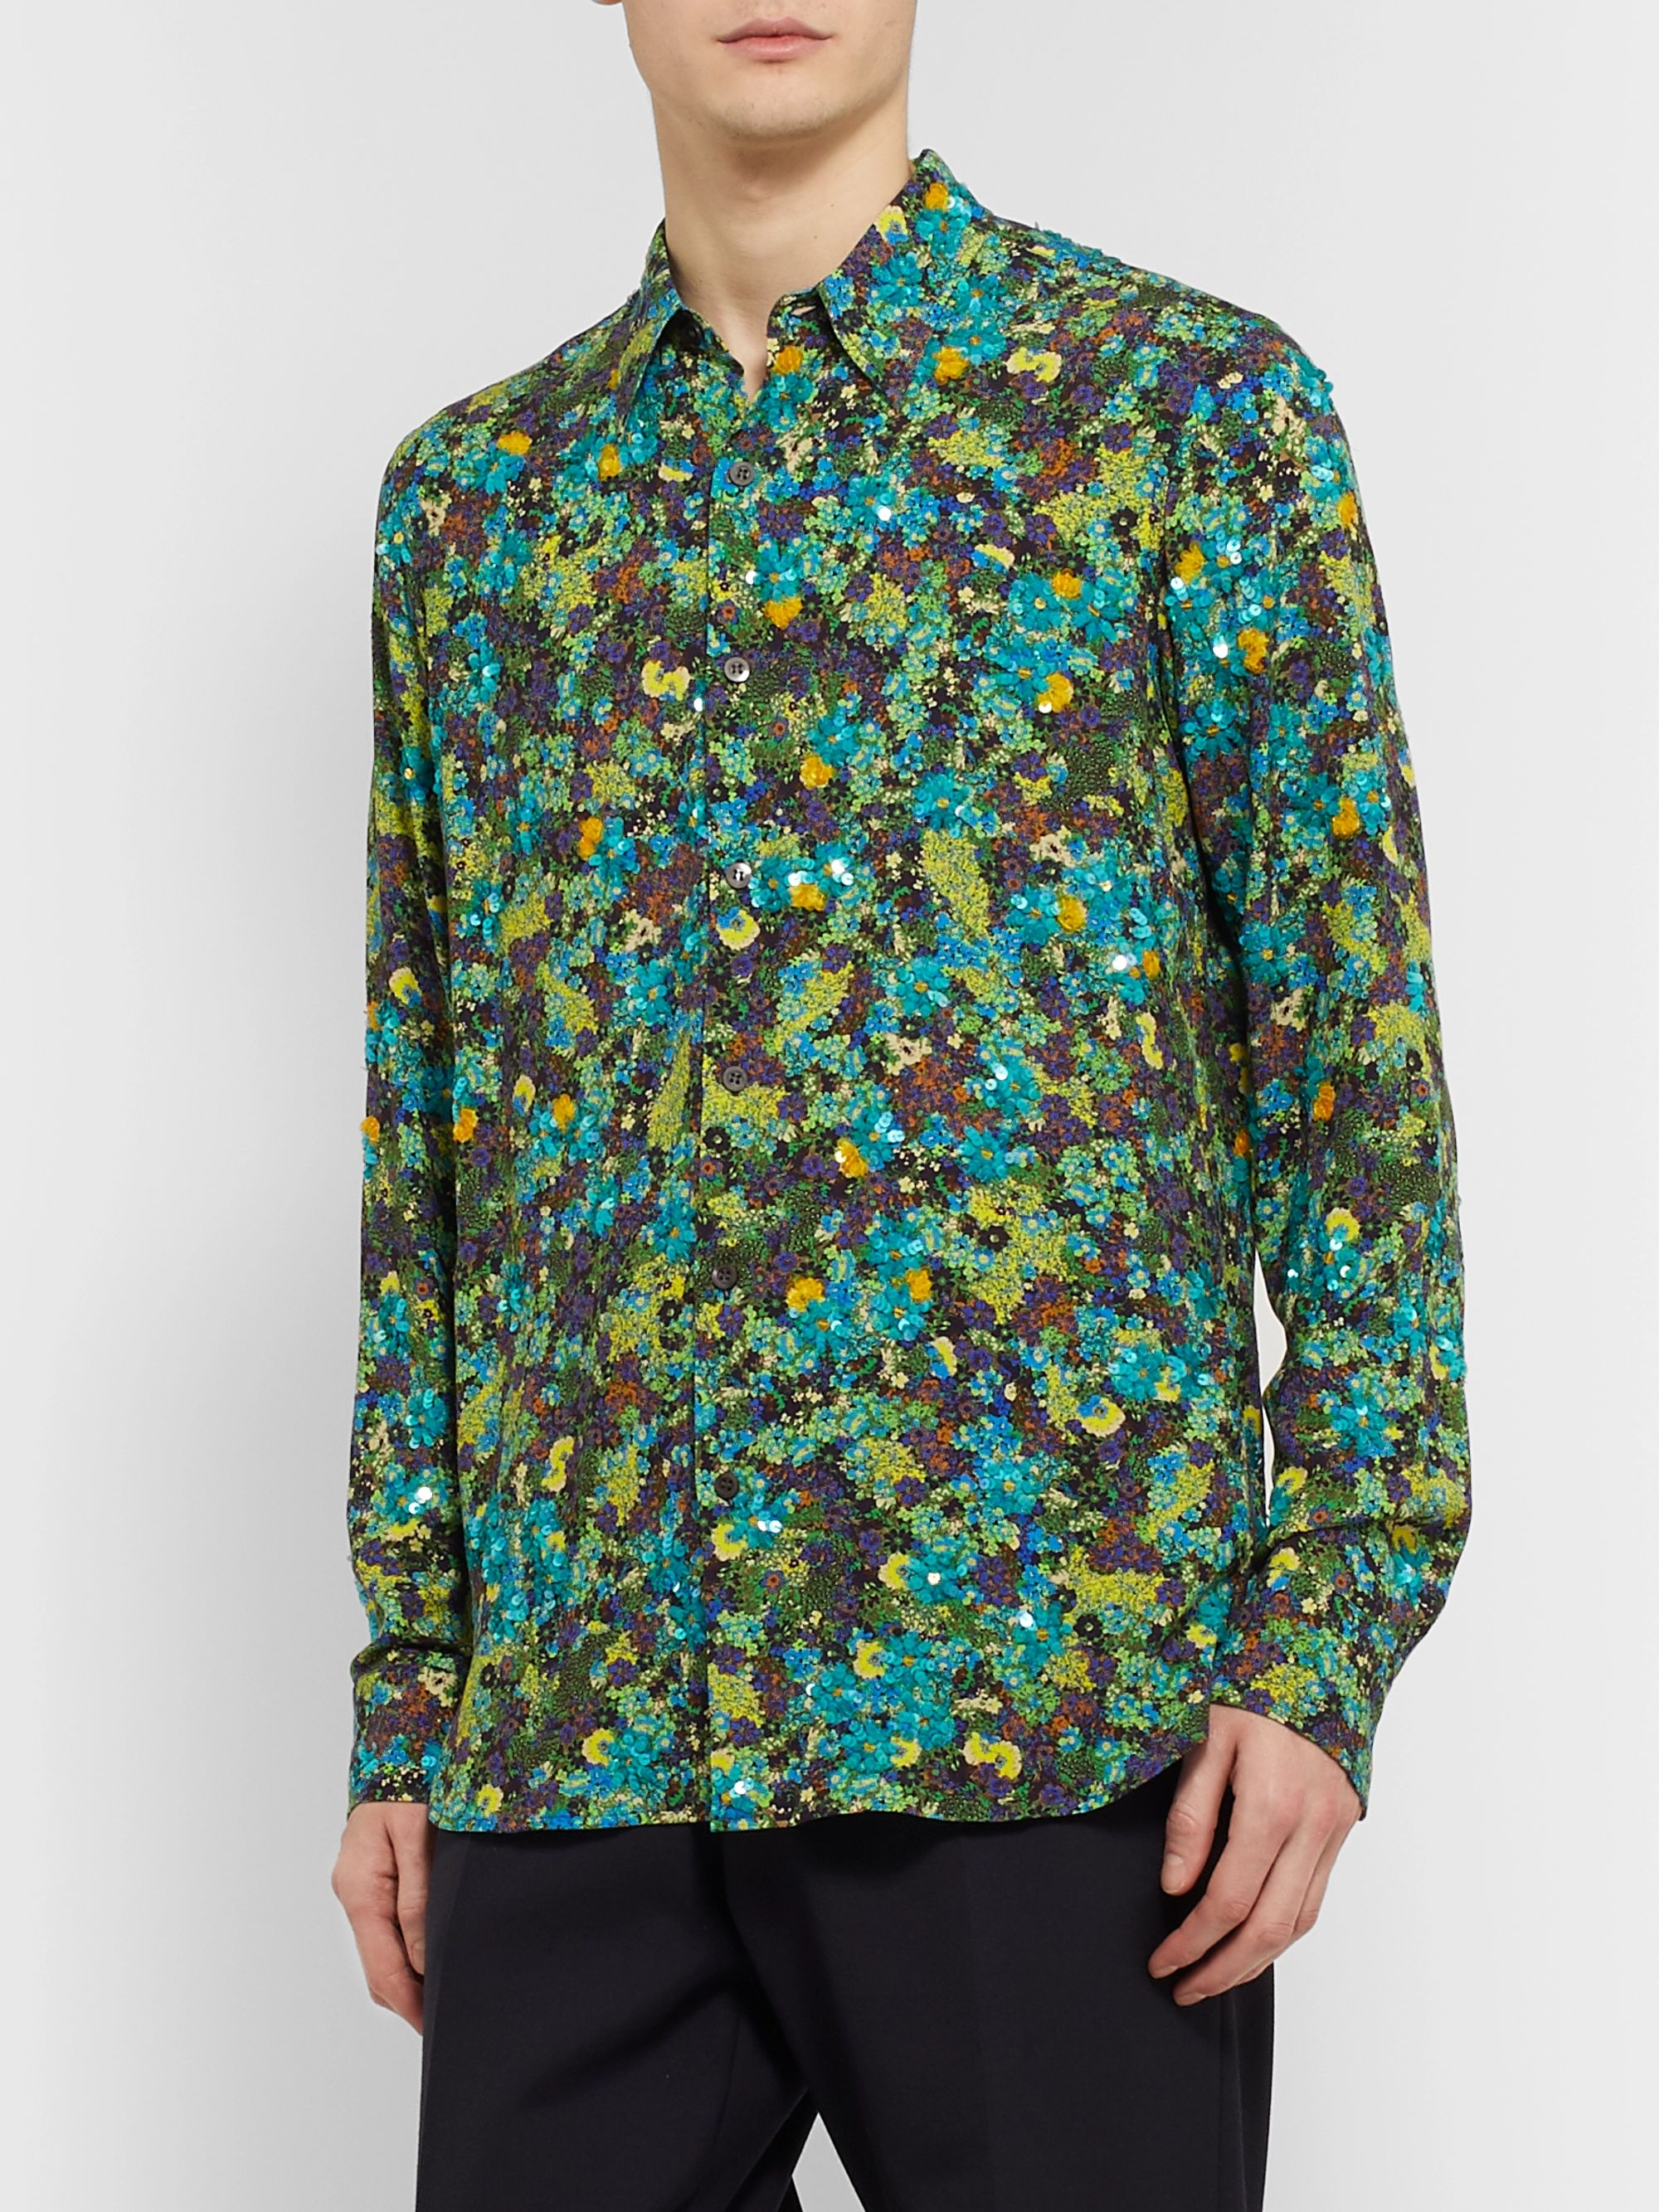 Dries Van Noten Sequin-Embellished Floral-Print Woven Shirt